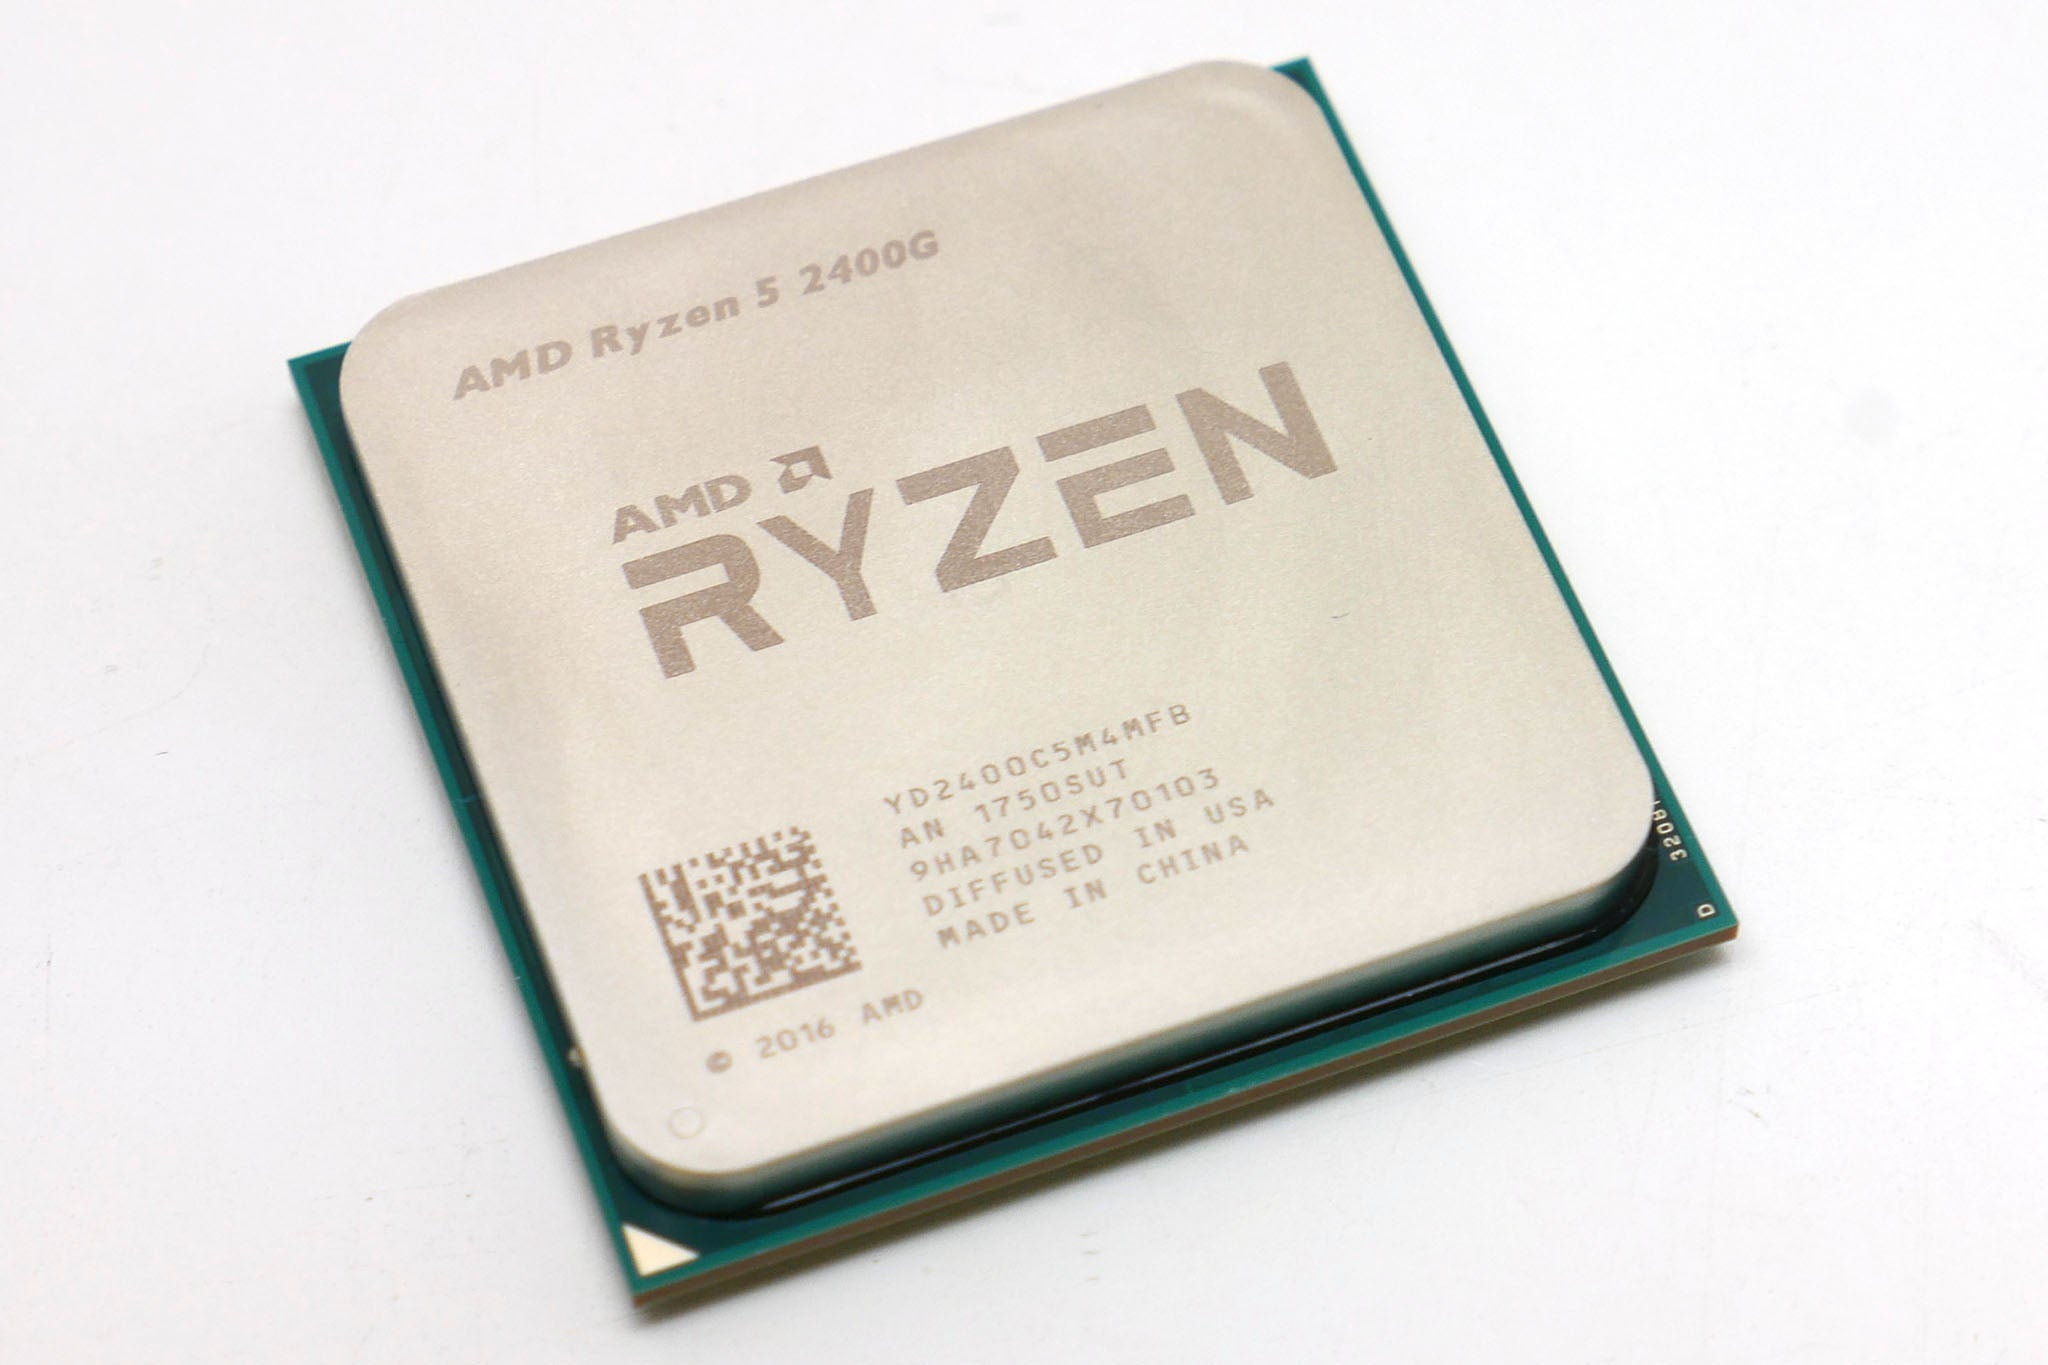 AMD Ryzen 5 2400G and 2200G Review | Trusted Reviews